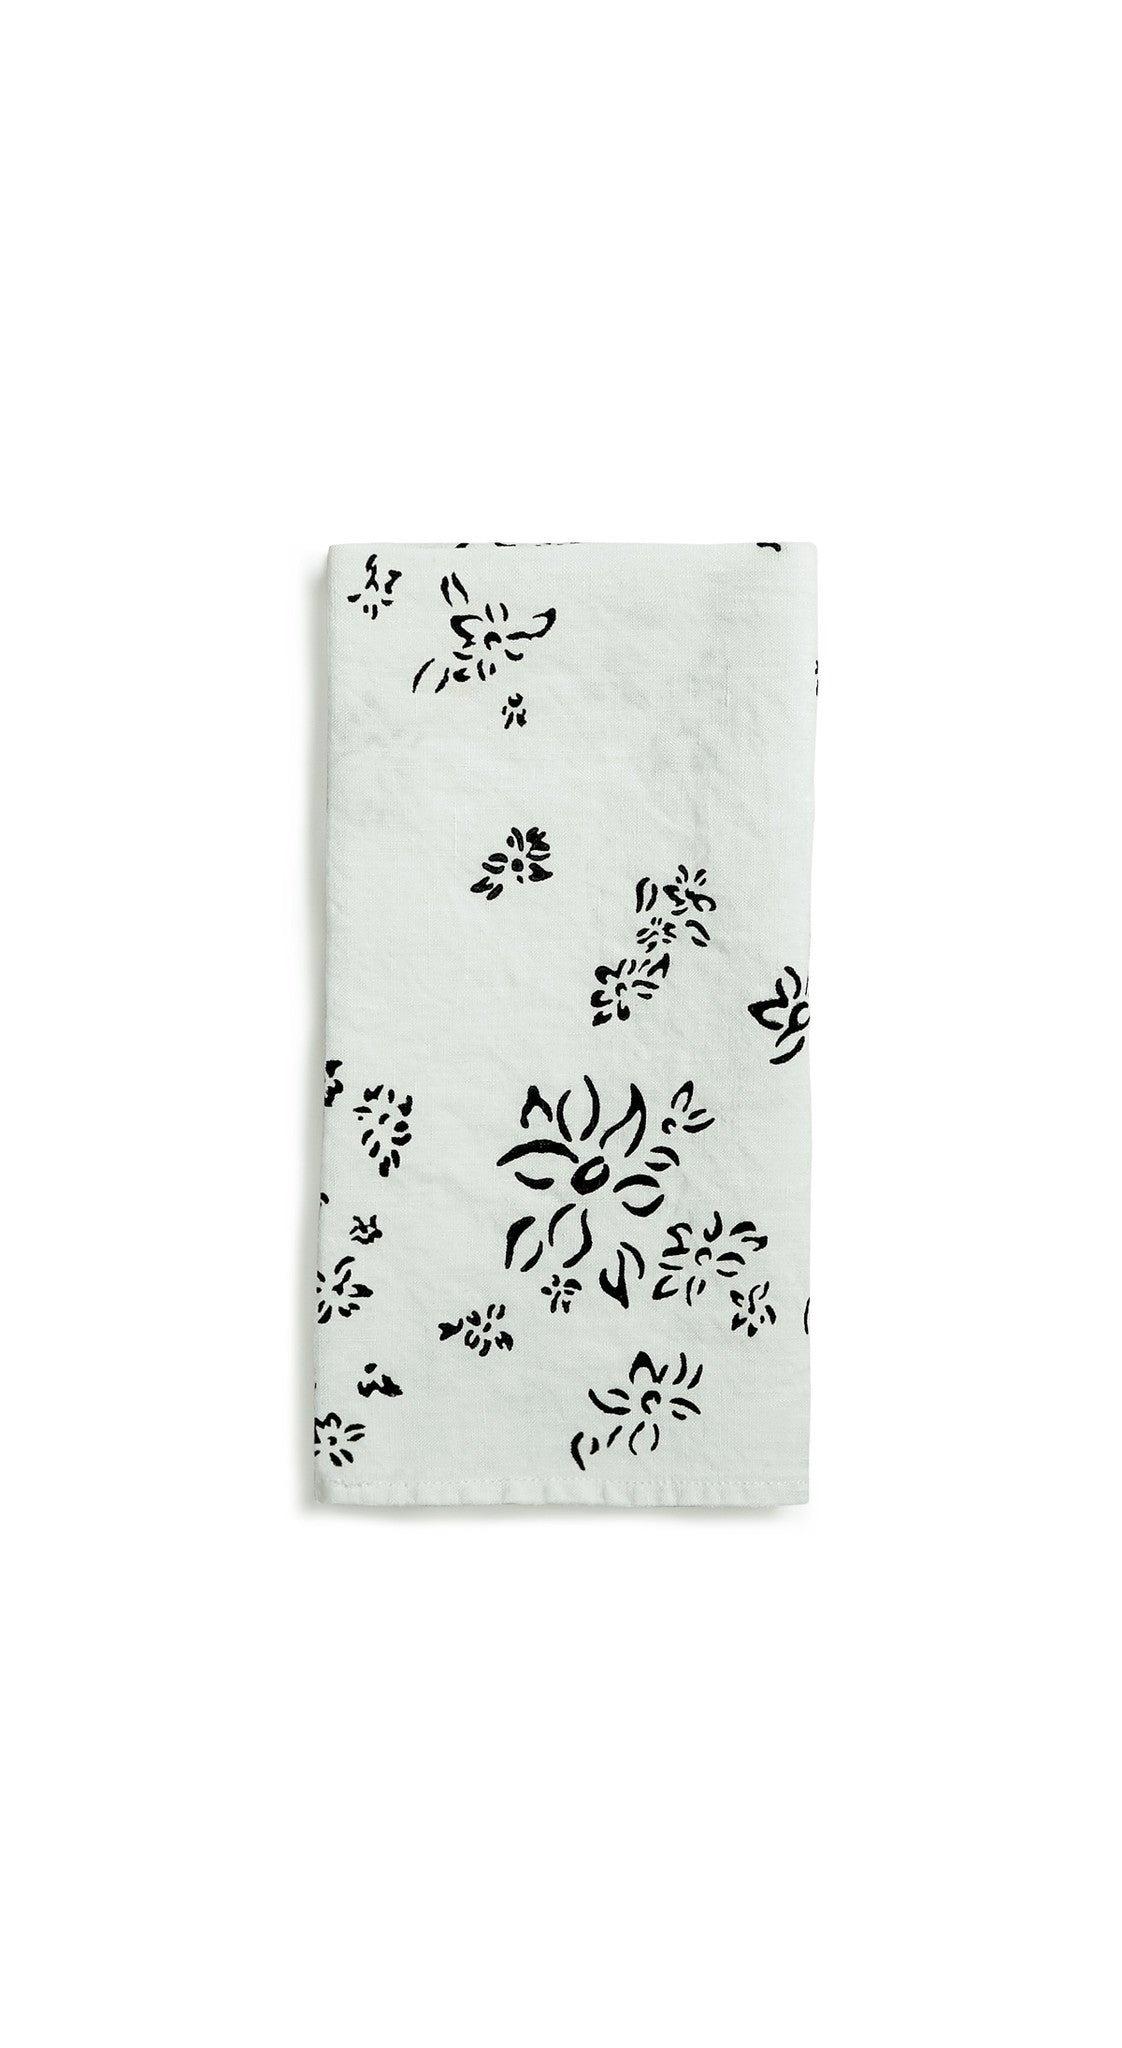 Bernadette's Falling Flower Linen Napkin in Forest Green